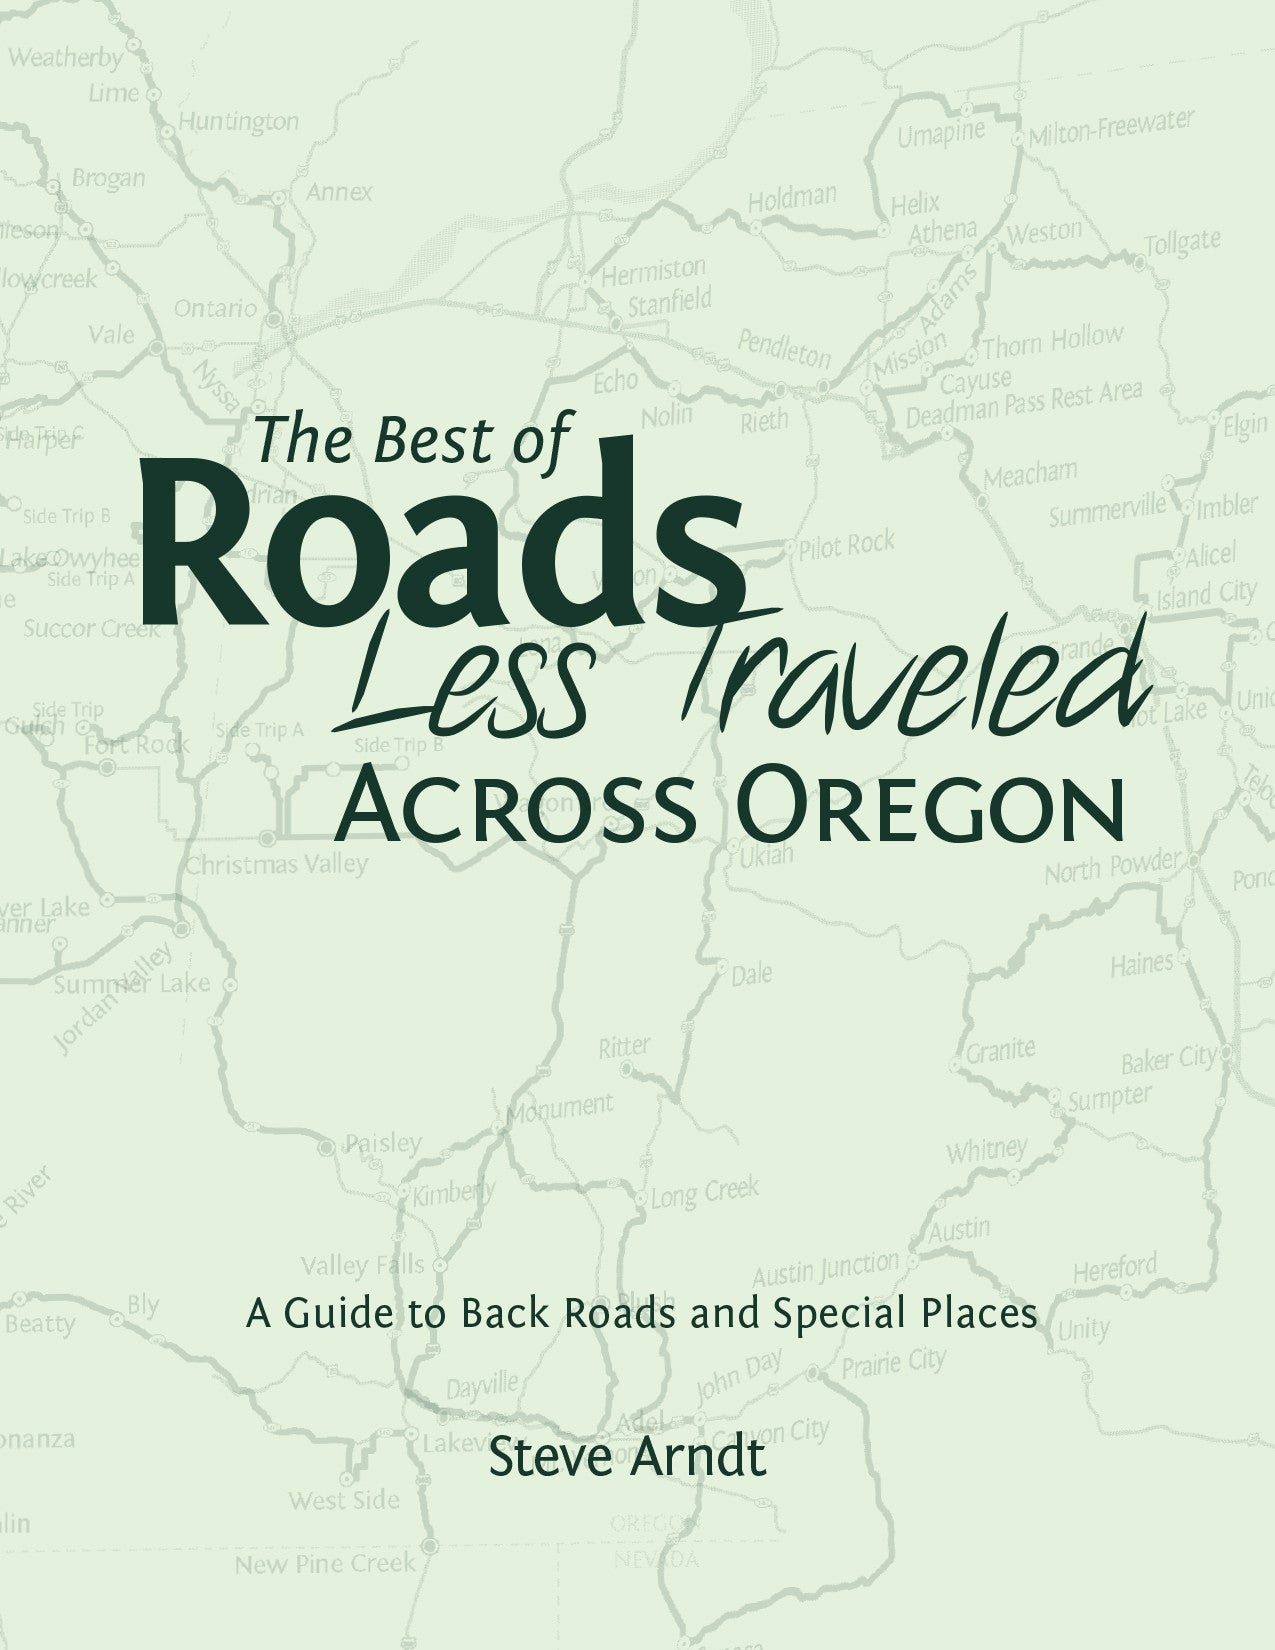 The Best of Roads Less Traveled Across Oregon